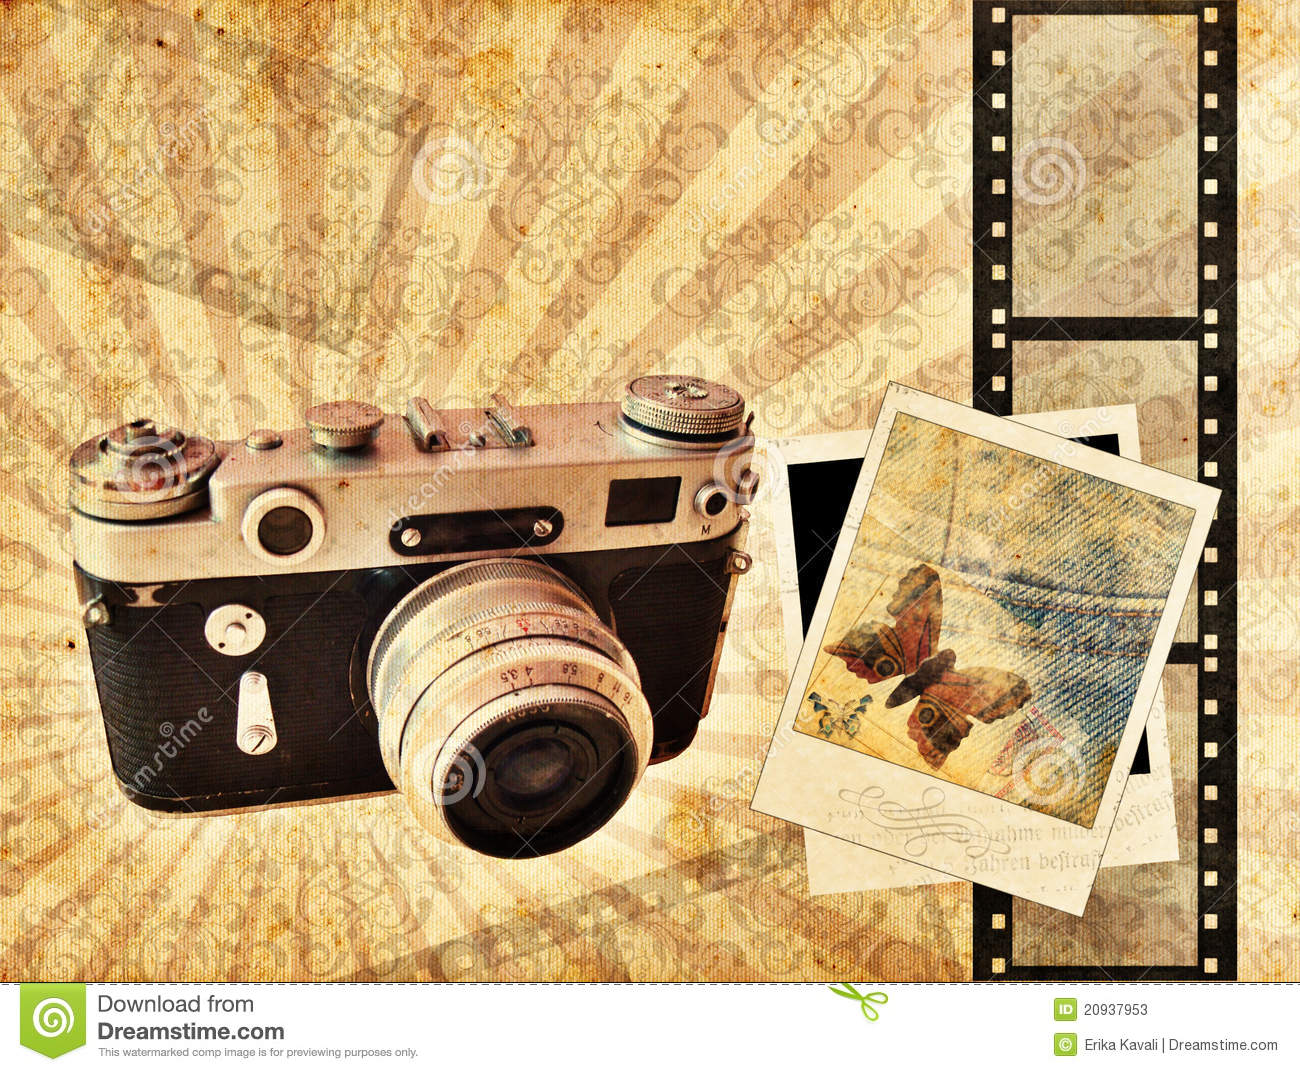 Vintage camera background with Vintage Camera Backgrounds